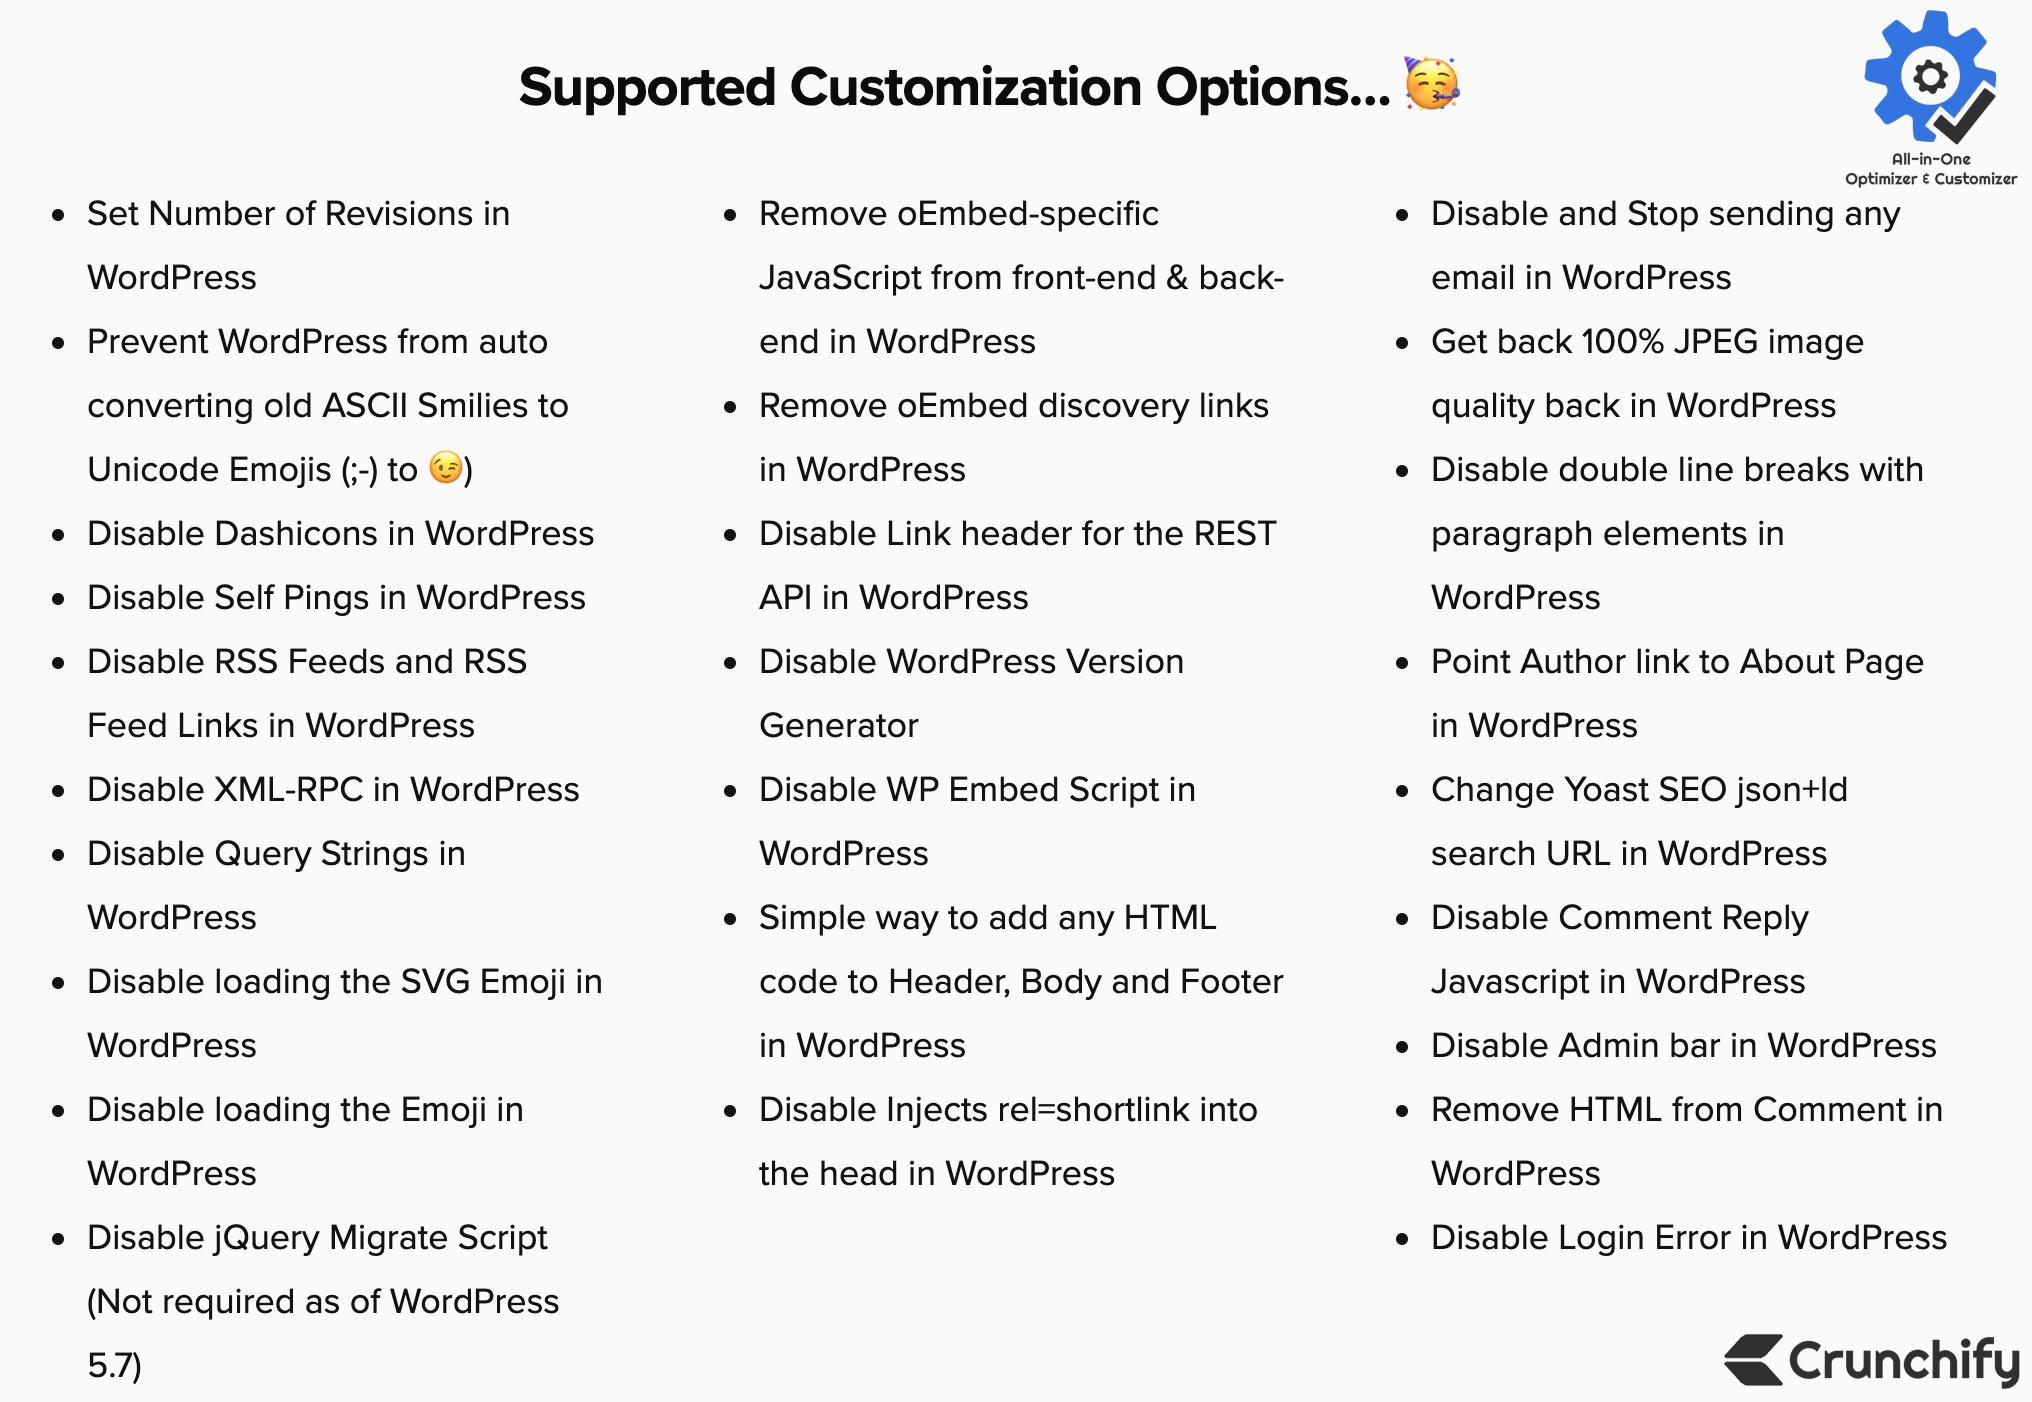 All-in-One Optimizer & Customizer - Supported Customization Options